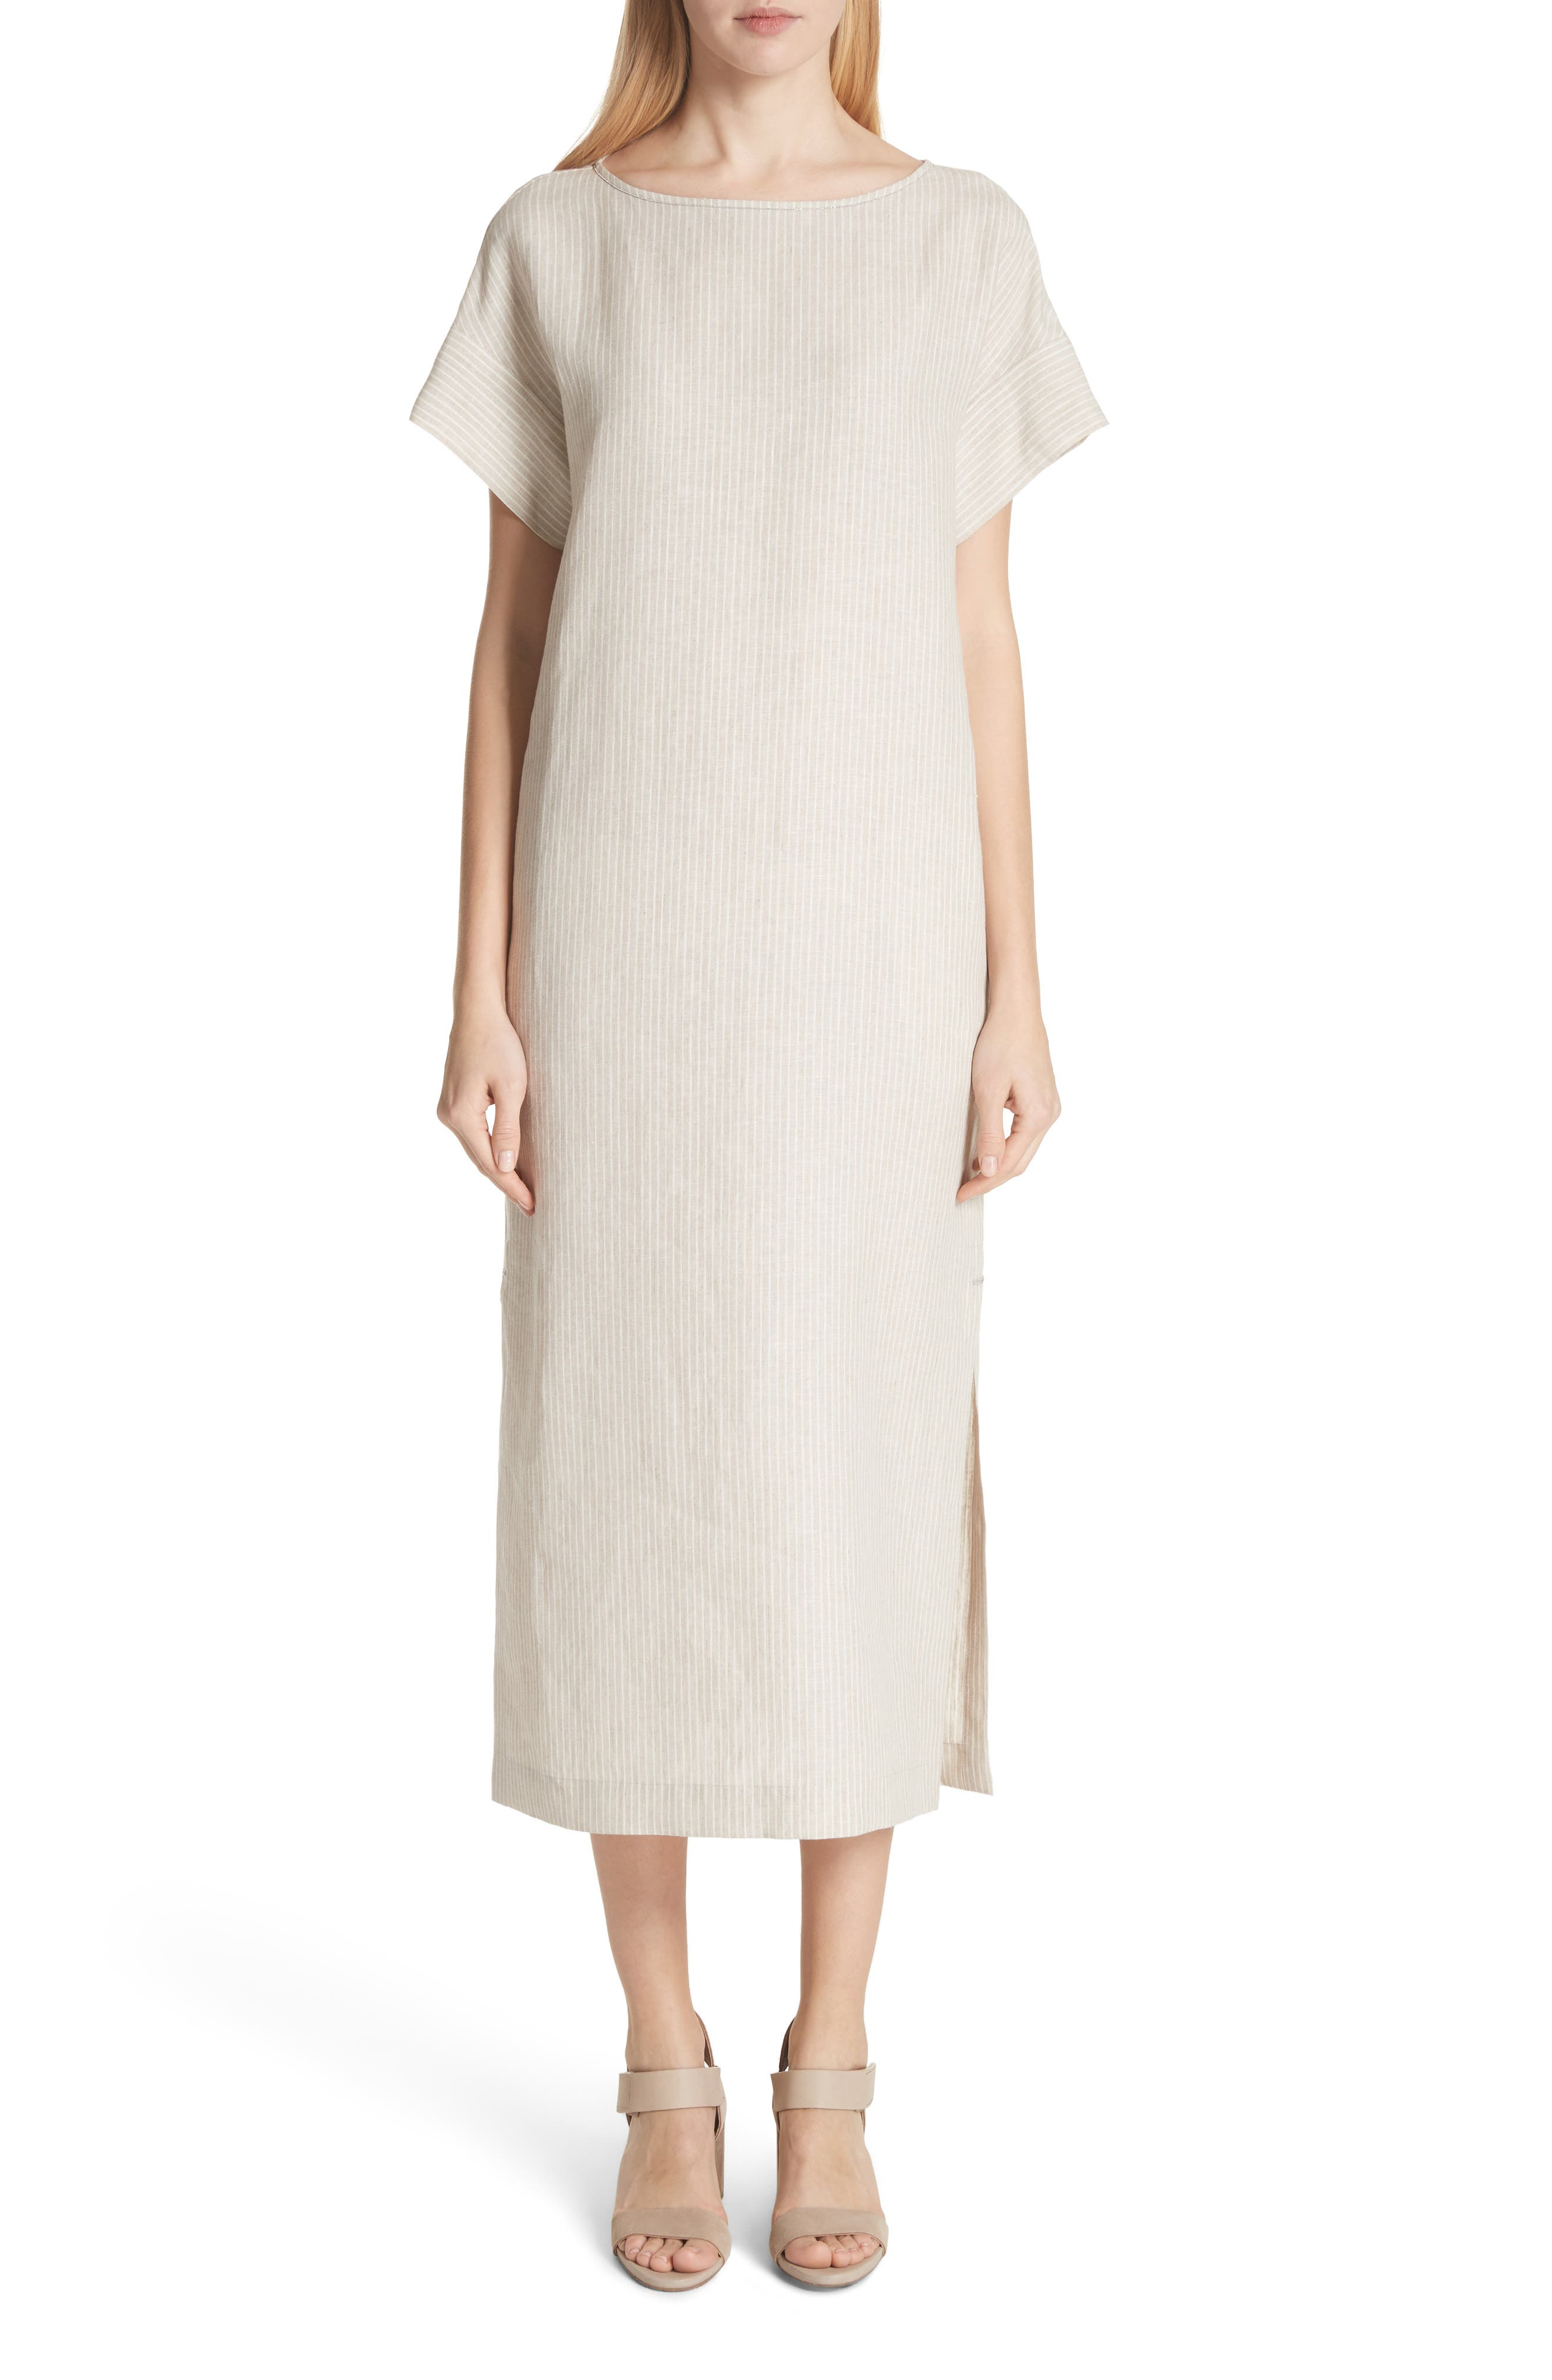 Emiline Stripe Linen Dress,                         Main,                         color, Tahini Multi